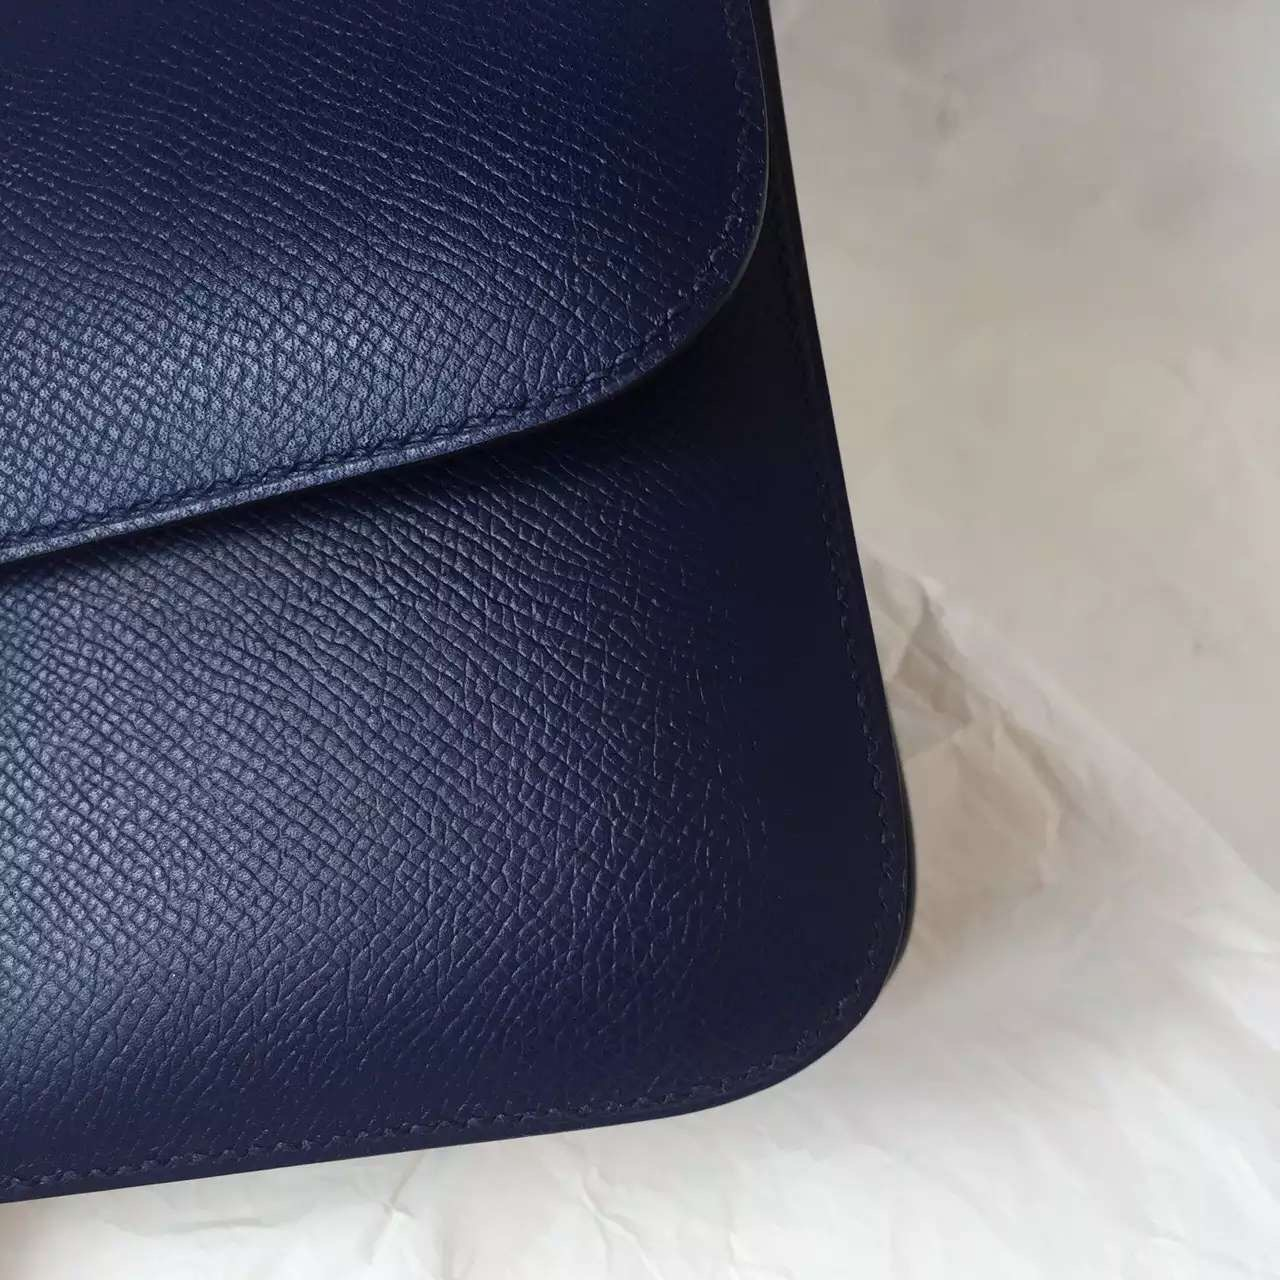 Fashion Hermes Epsom Leather Constance Bag 26CM in 7K Blue Saphir Women's Cross-body Bag